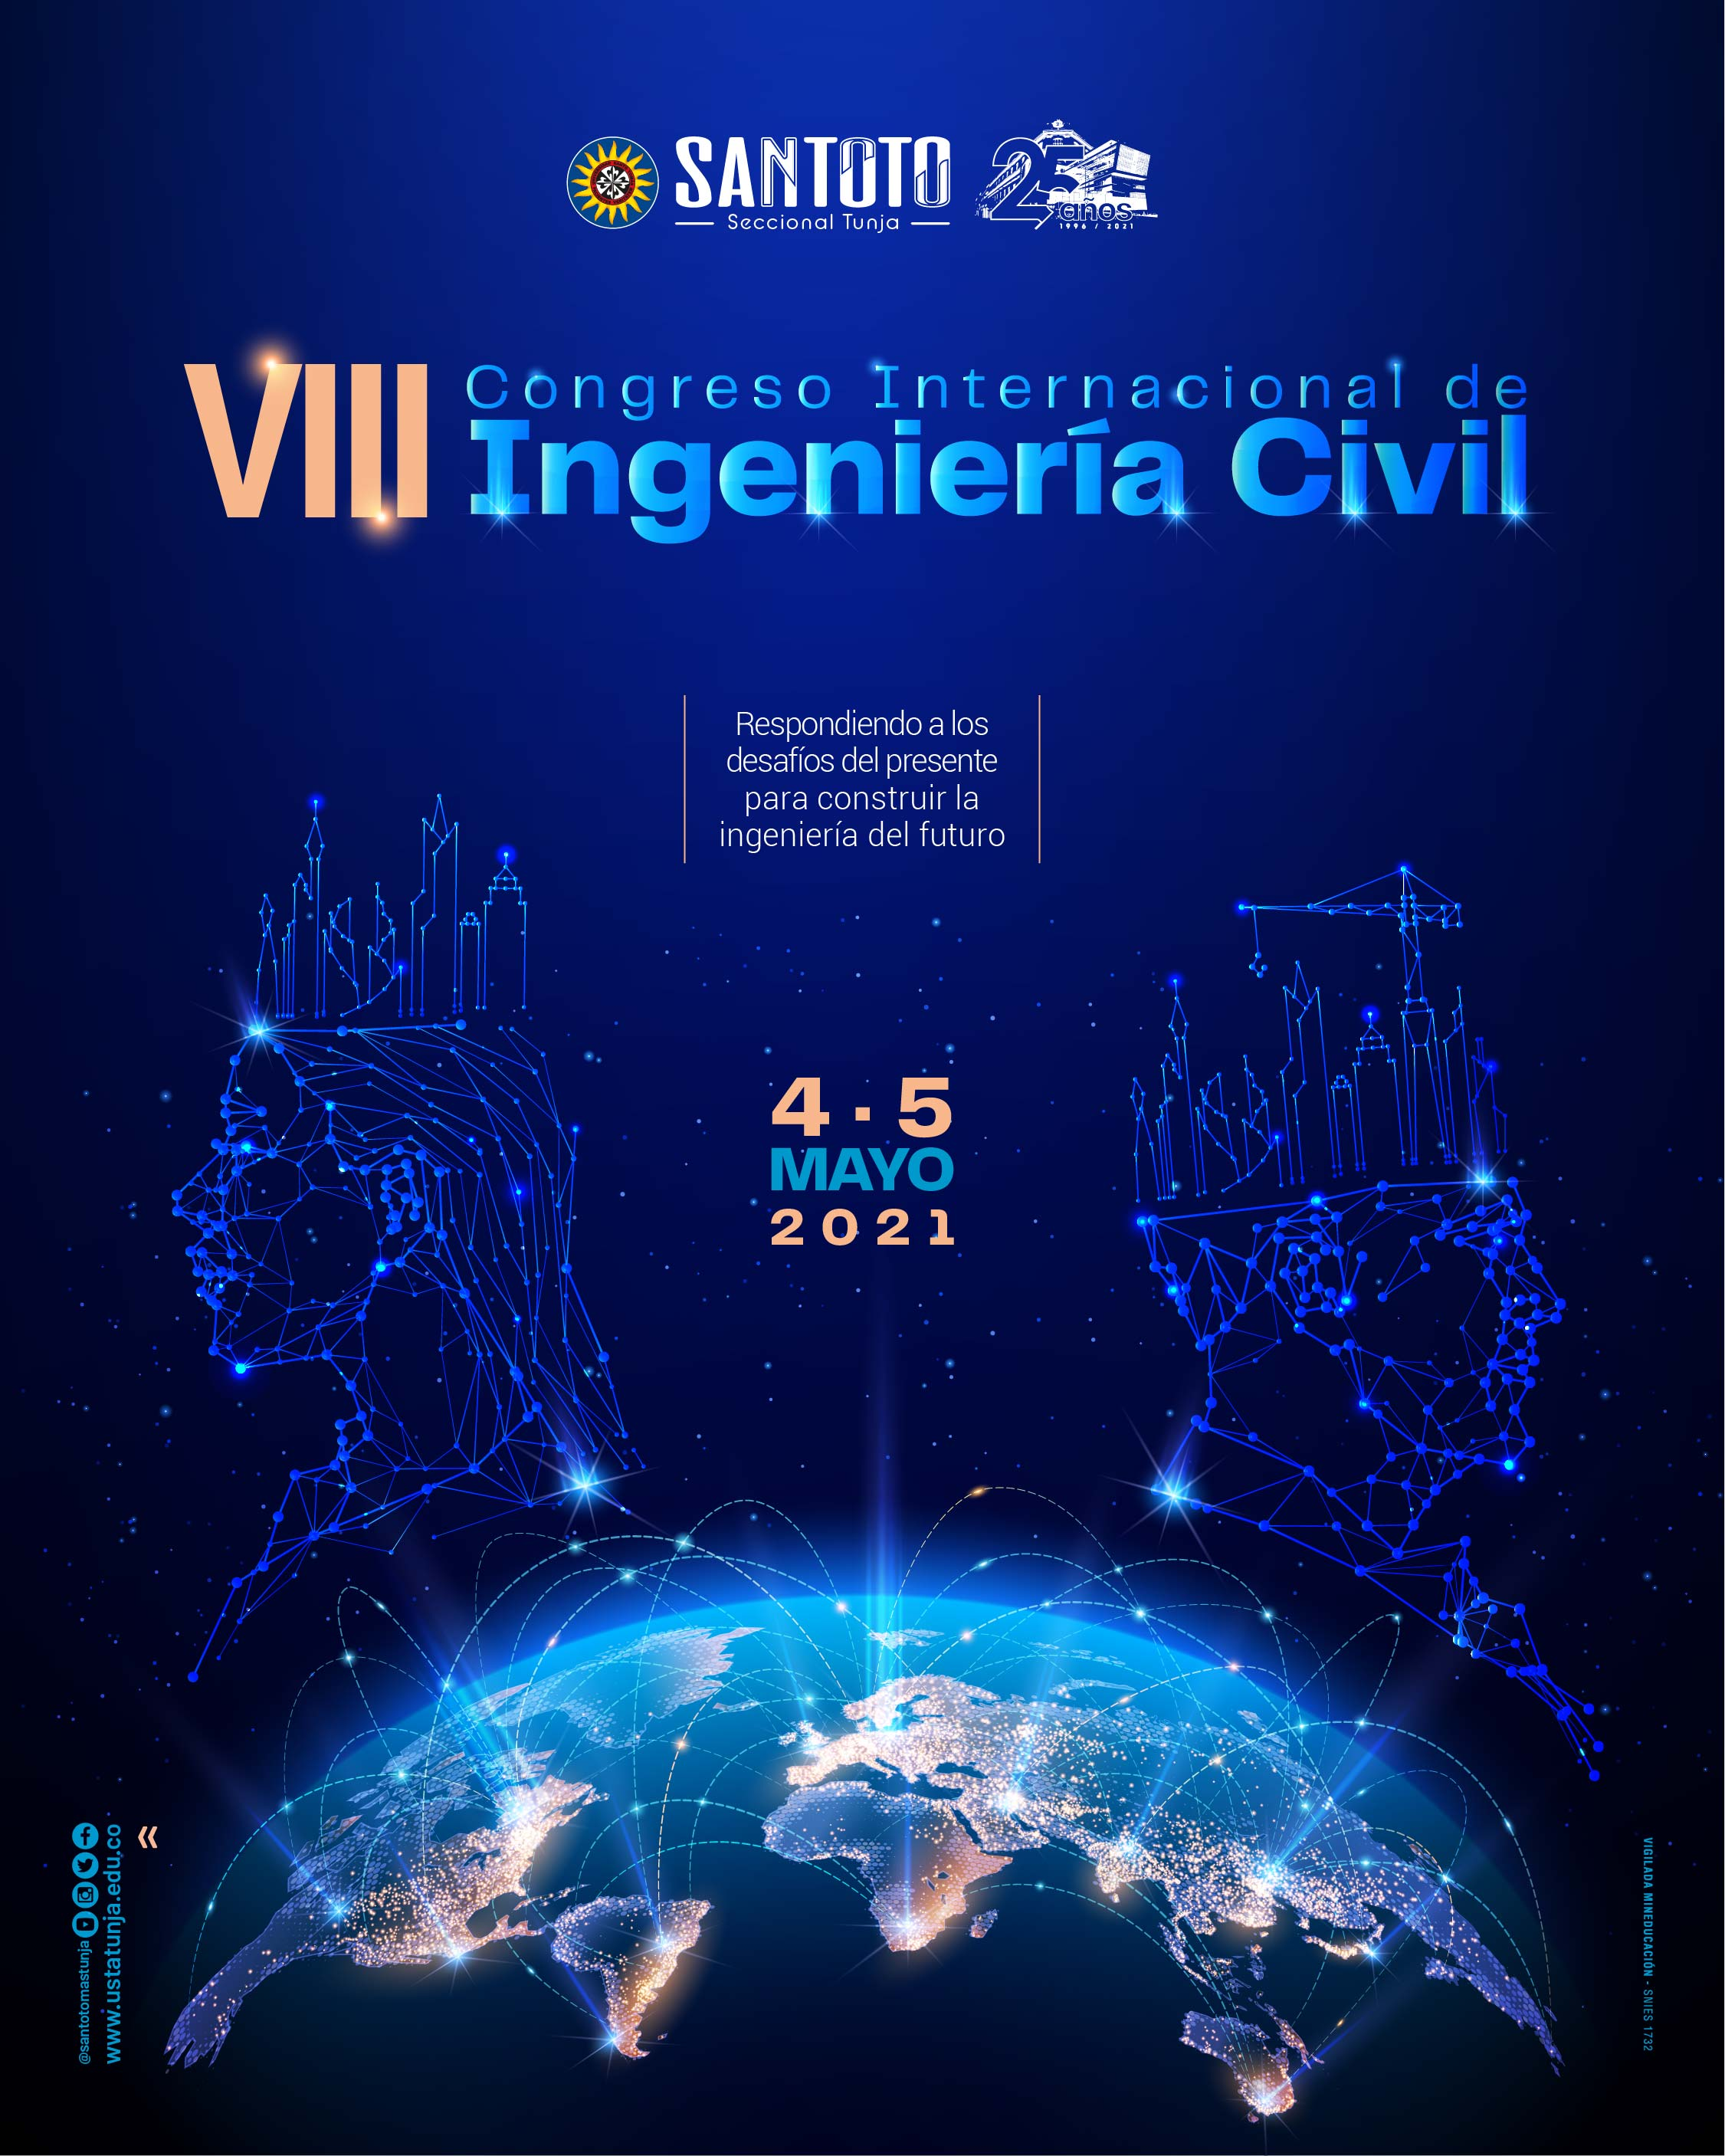 VIII Congreso Internacional de Ingenieria Civil Evento Web post